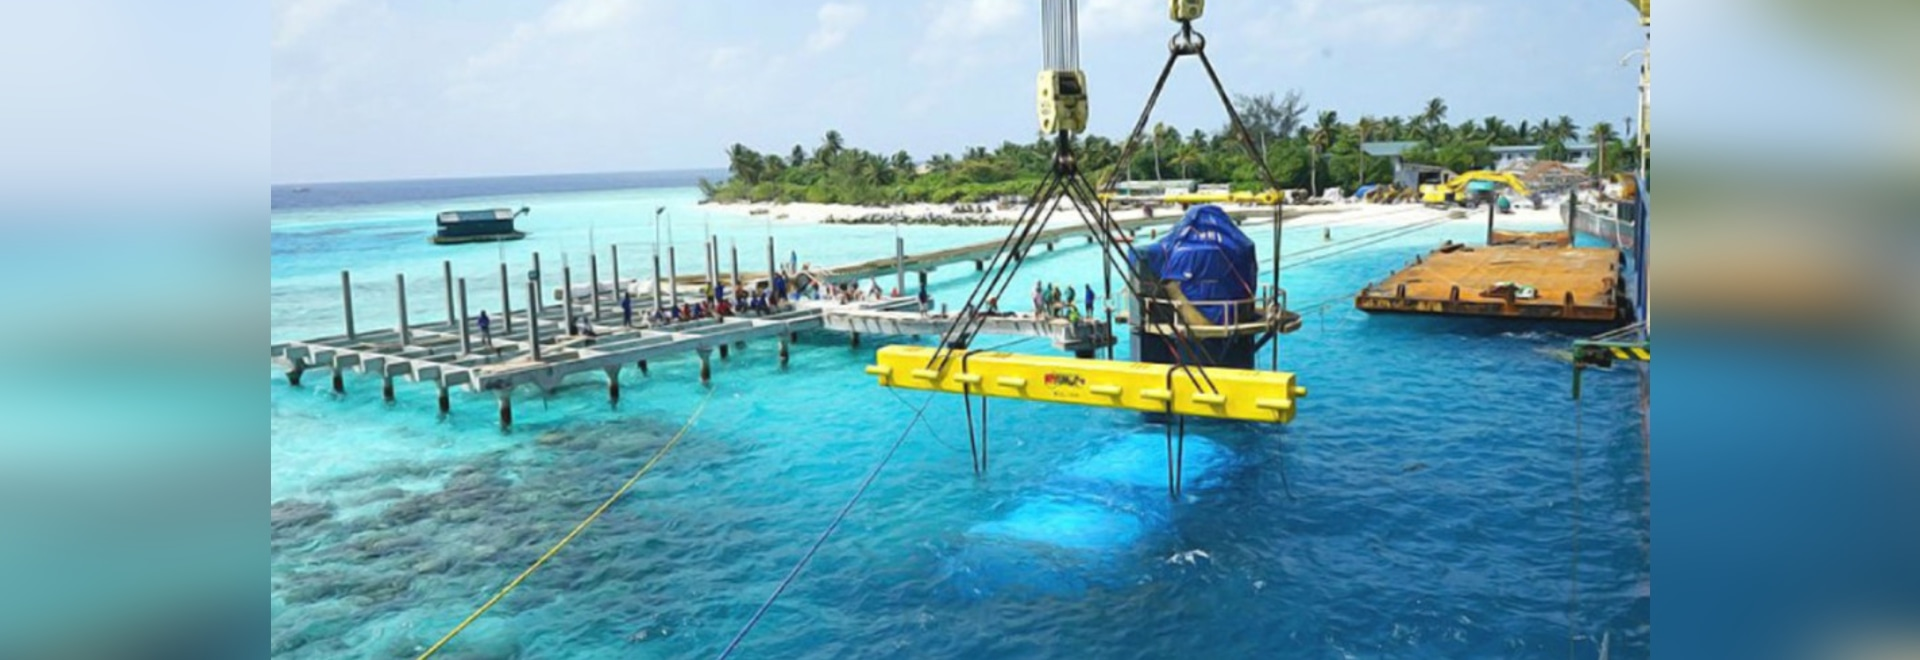 worlds largest underwater restaurant installed in the maldives - Underwater World Restaurant